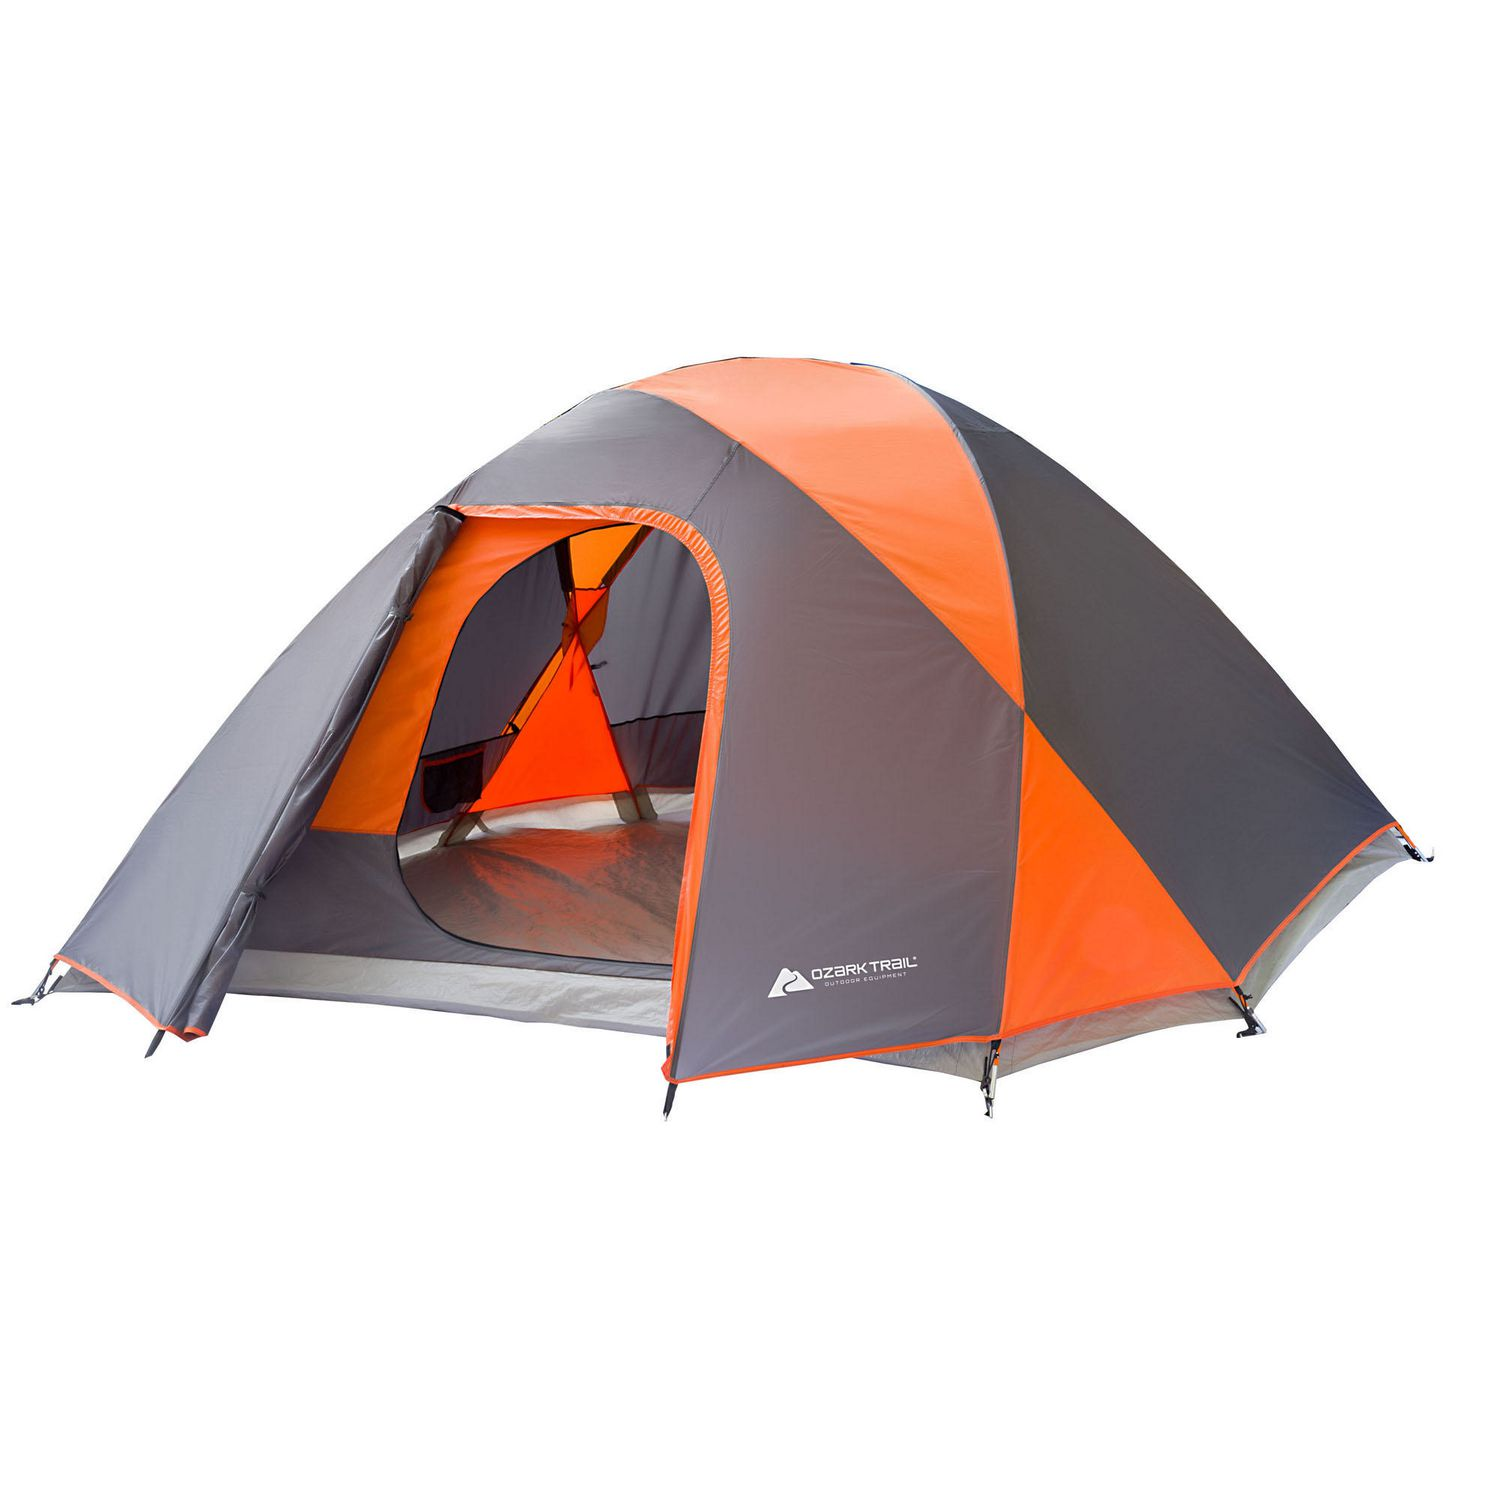 Ozark Trail 5 Person Dome Tent With Full Coverage Rainfly